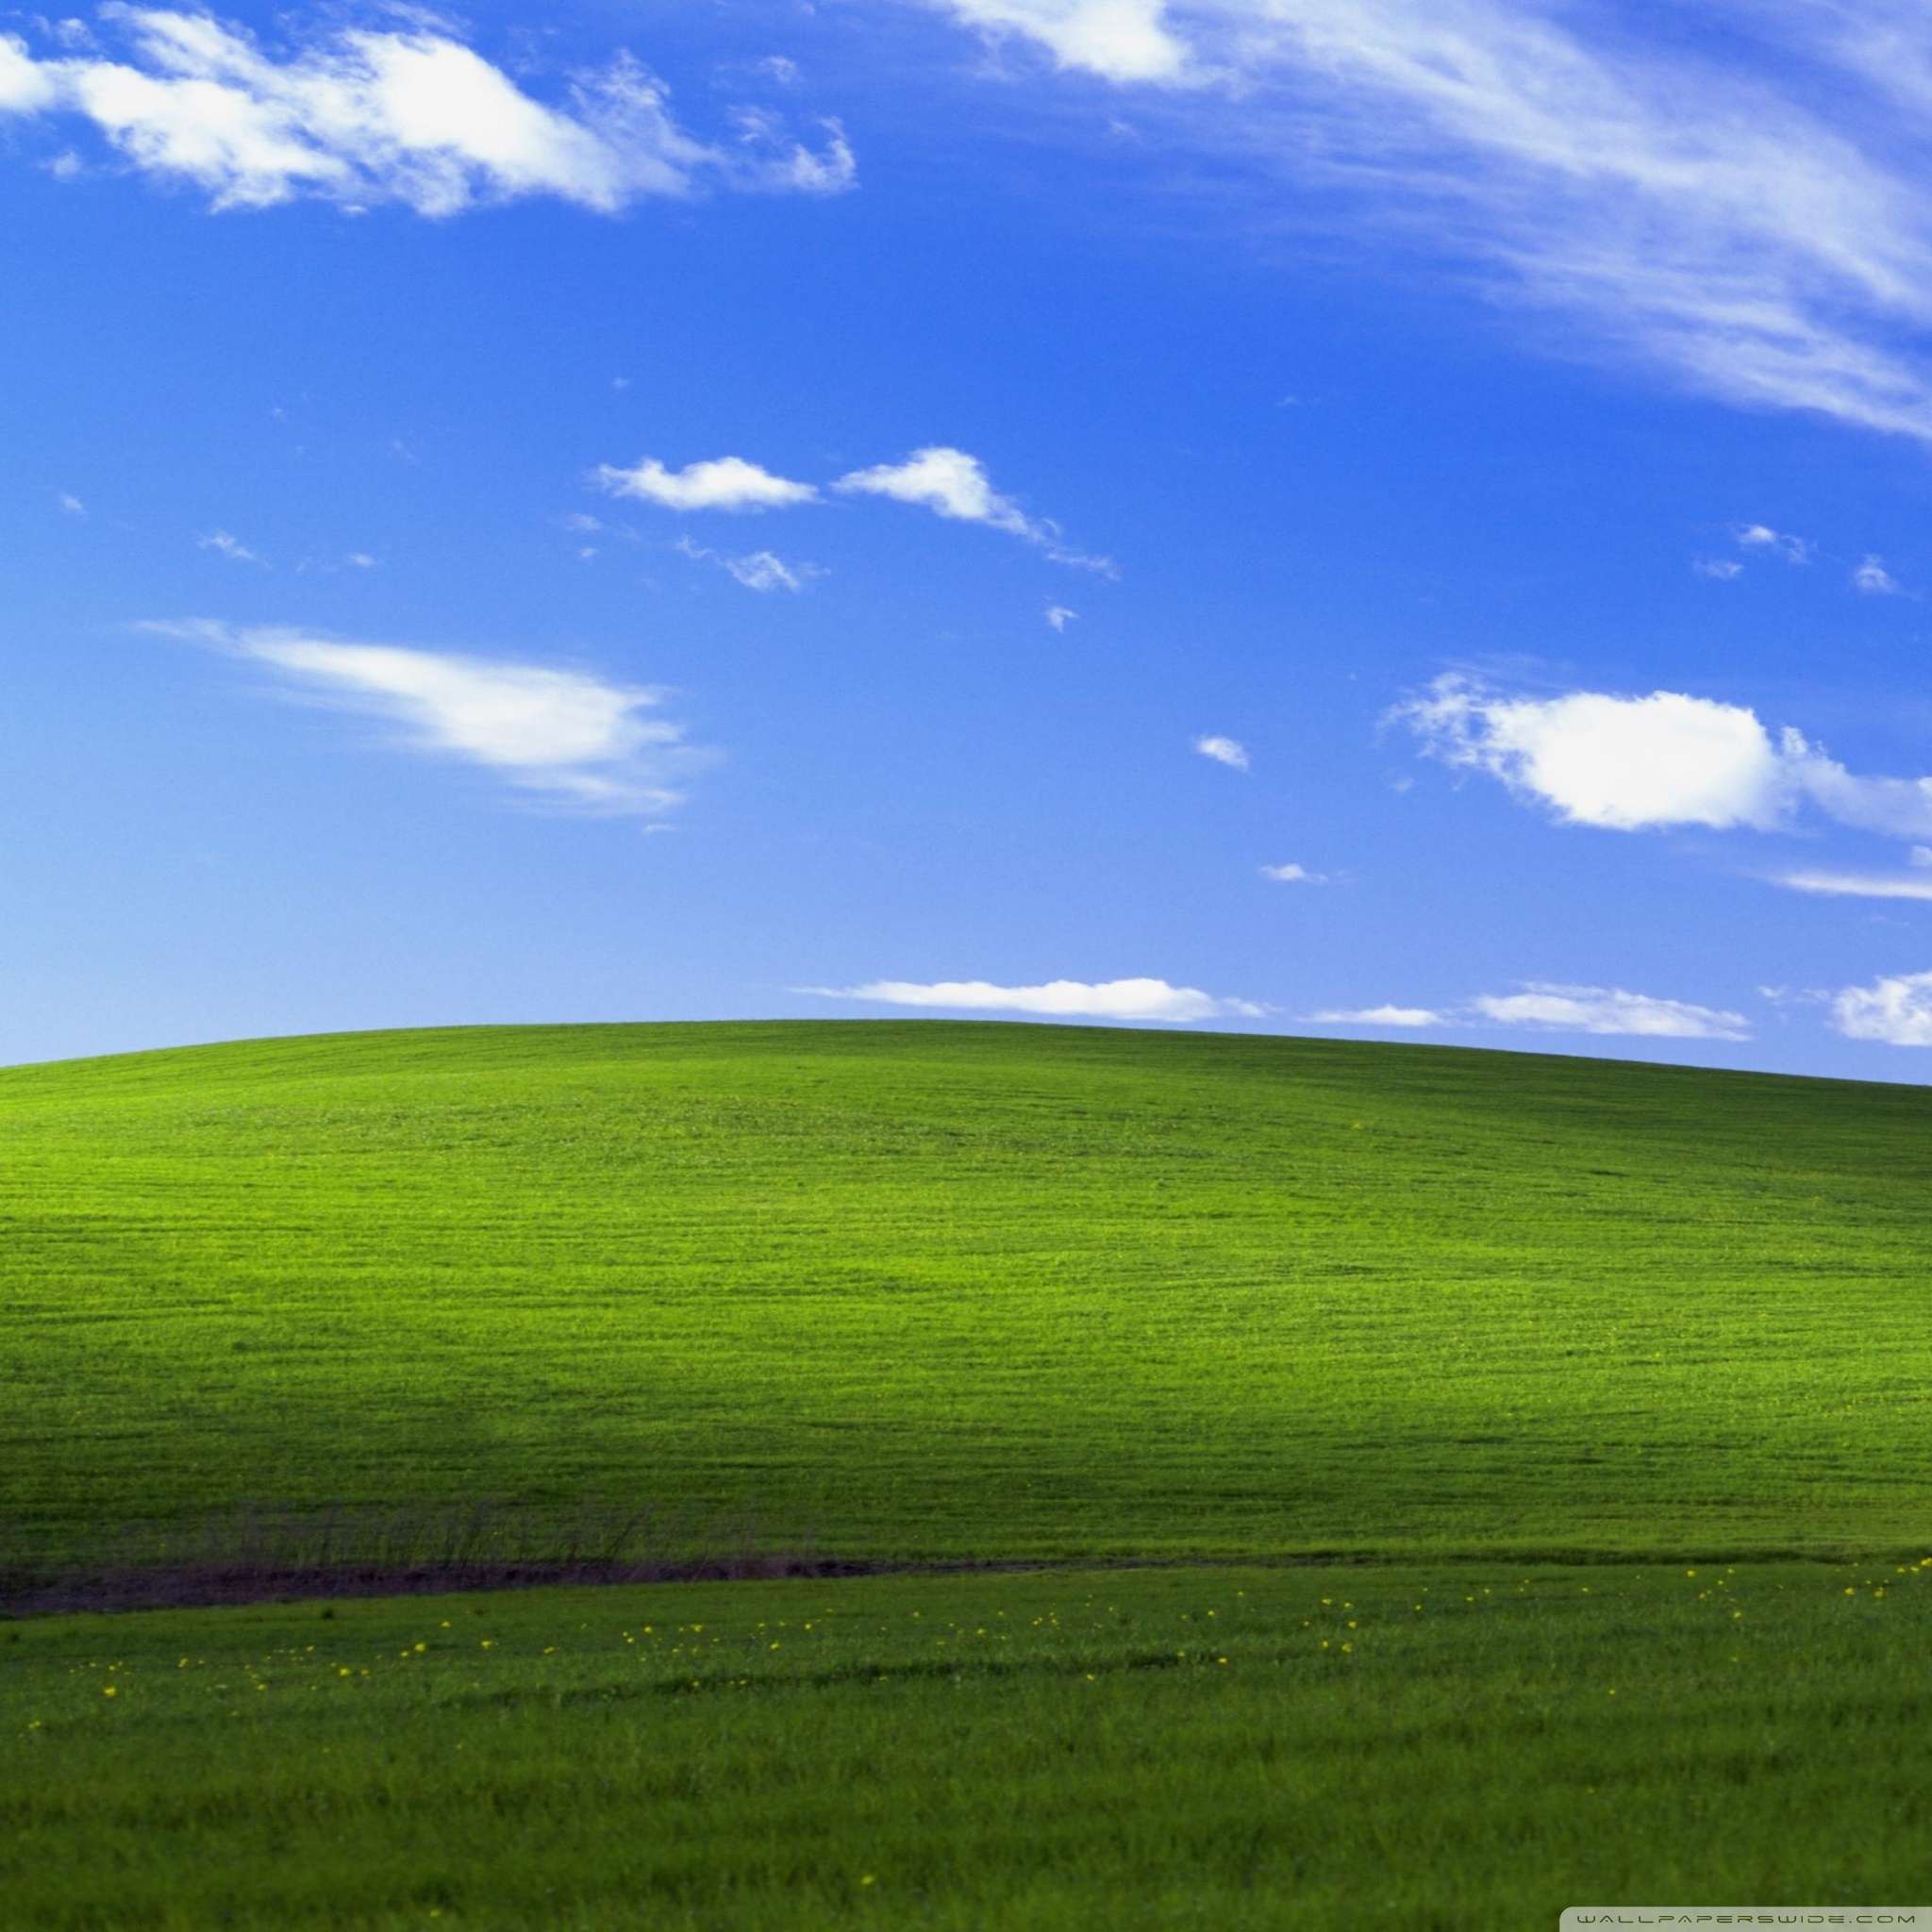 Windows XP Ultra HD Desktop Background Wallpaper for 4K UHD TV 2048x2048